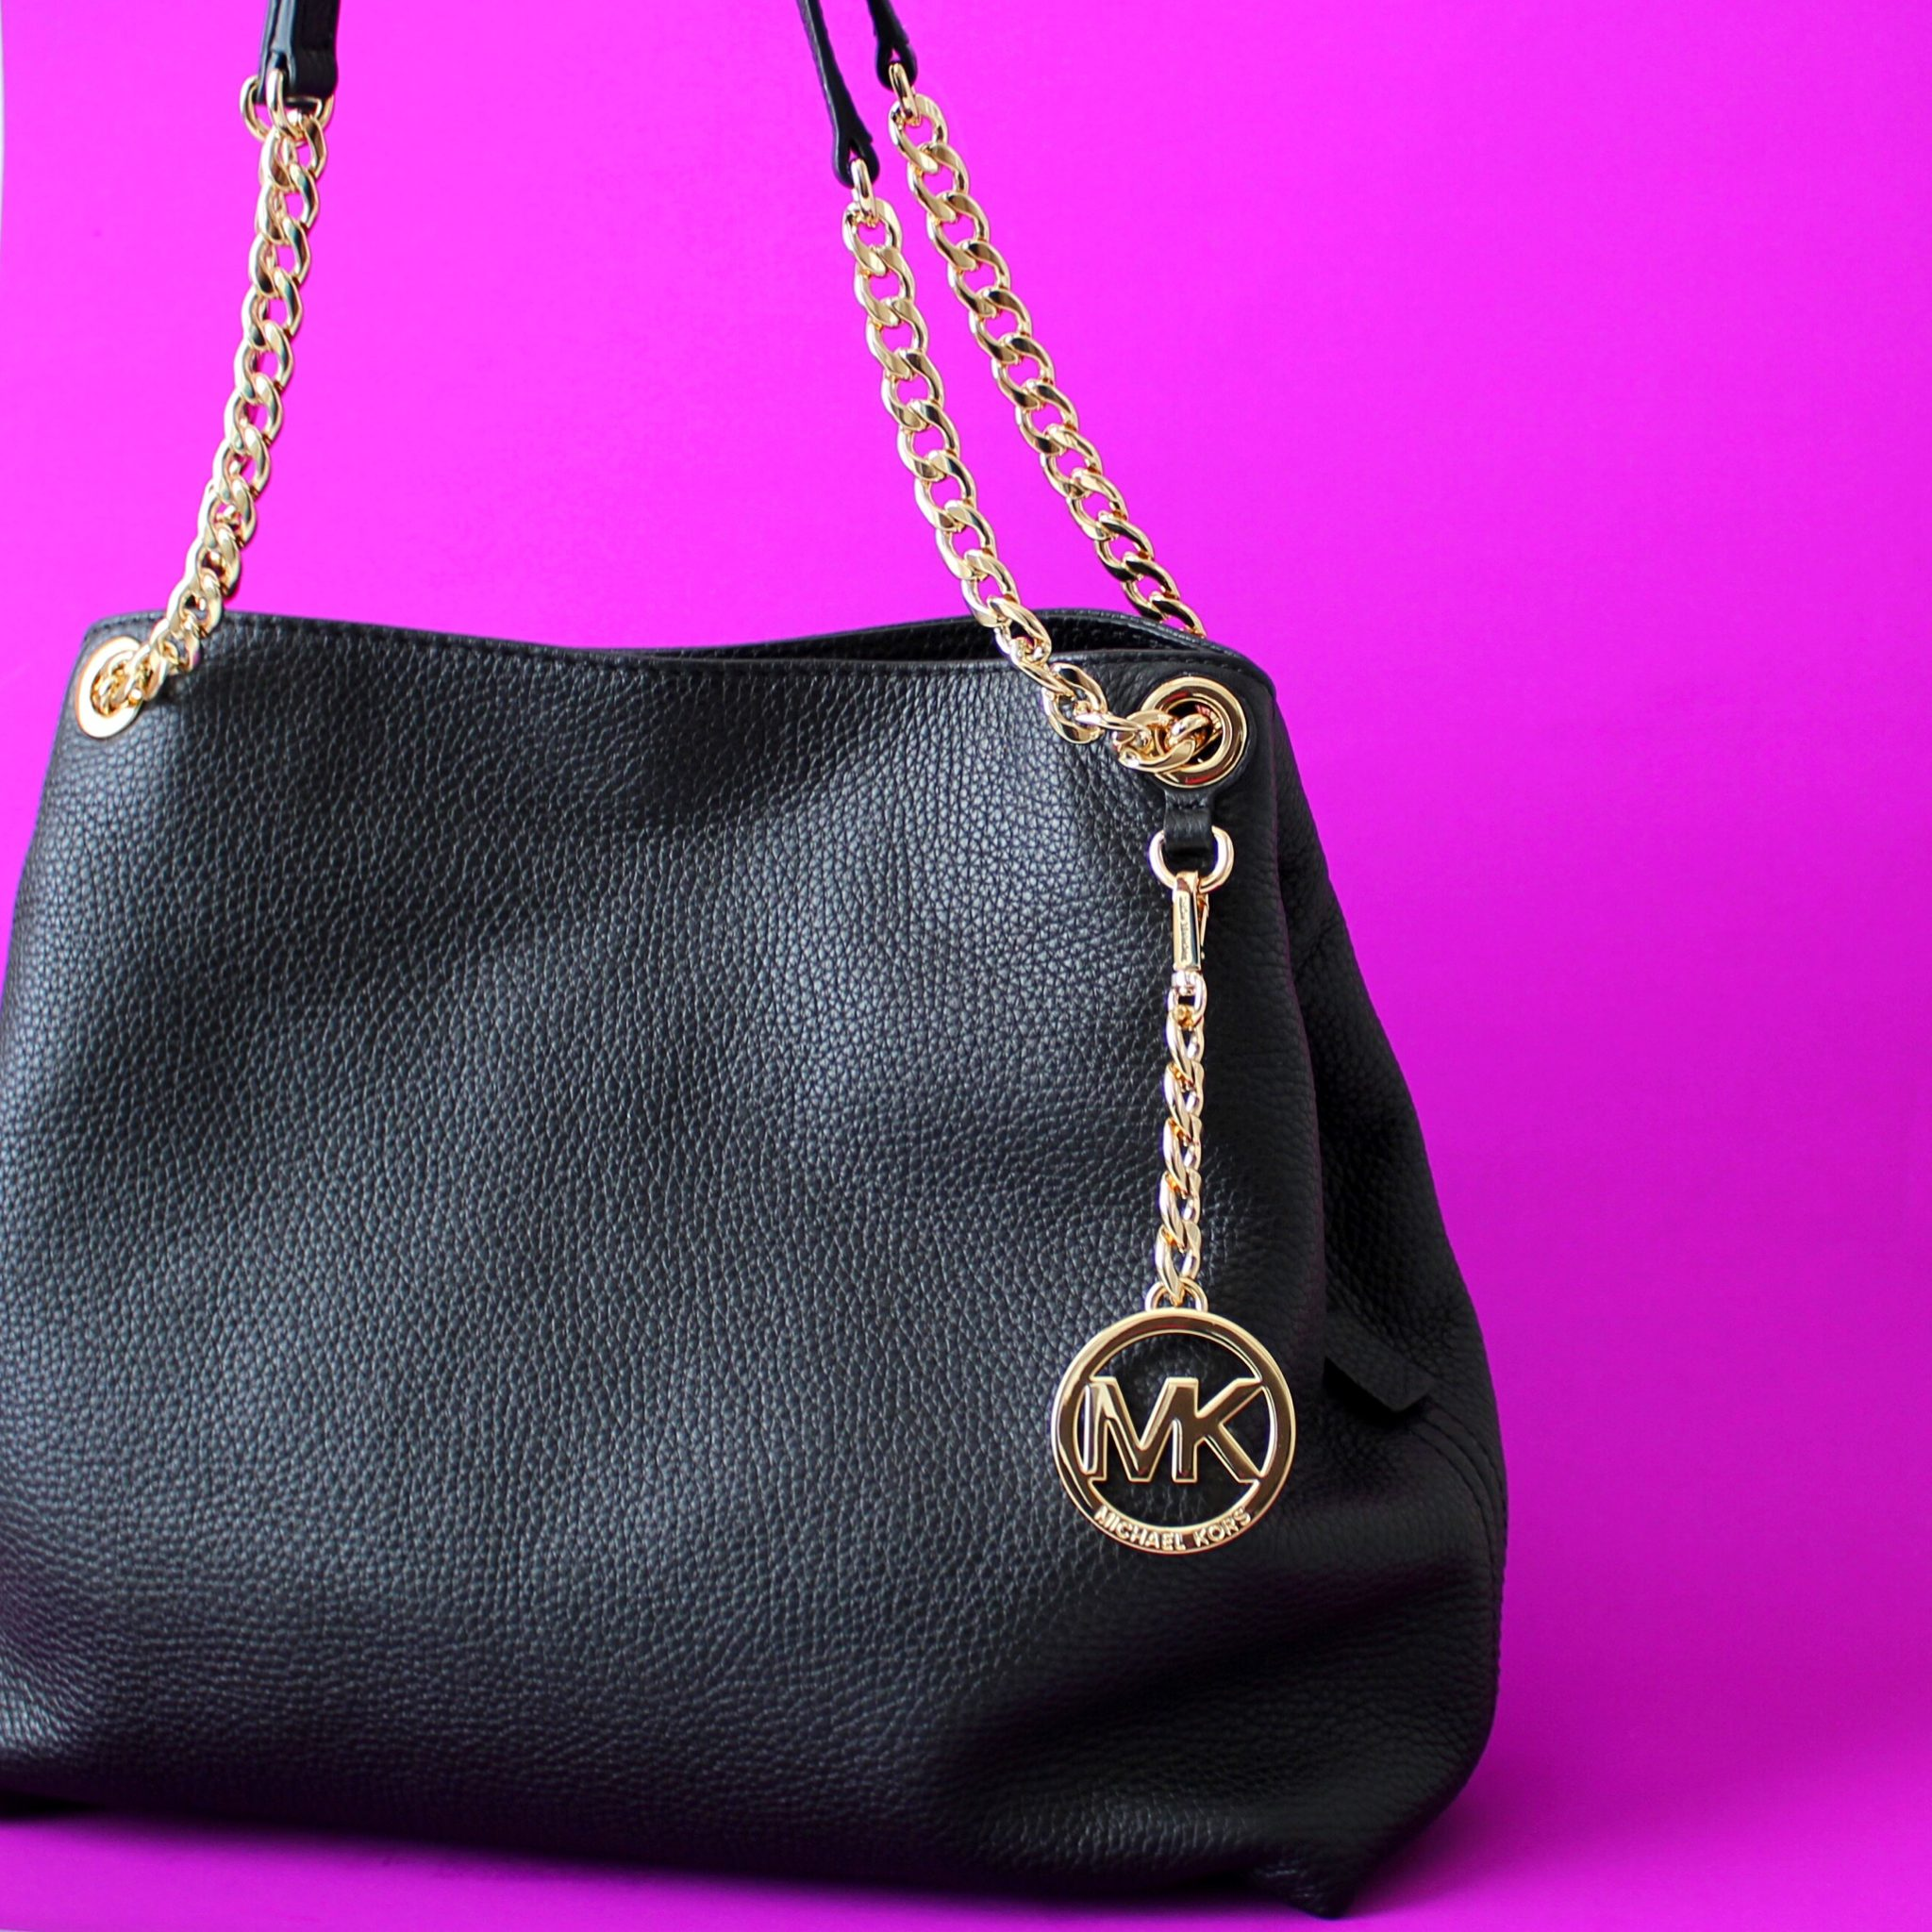 Michael Kors Jet Set Shoulder Bag Review & Unboxing graphic